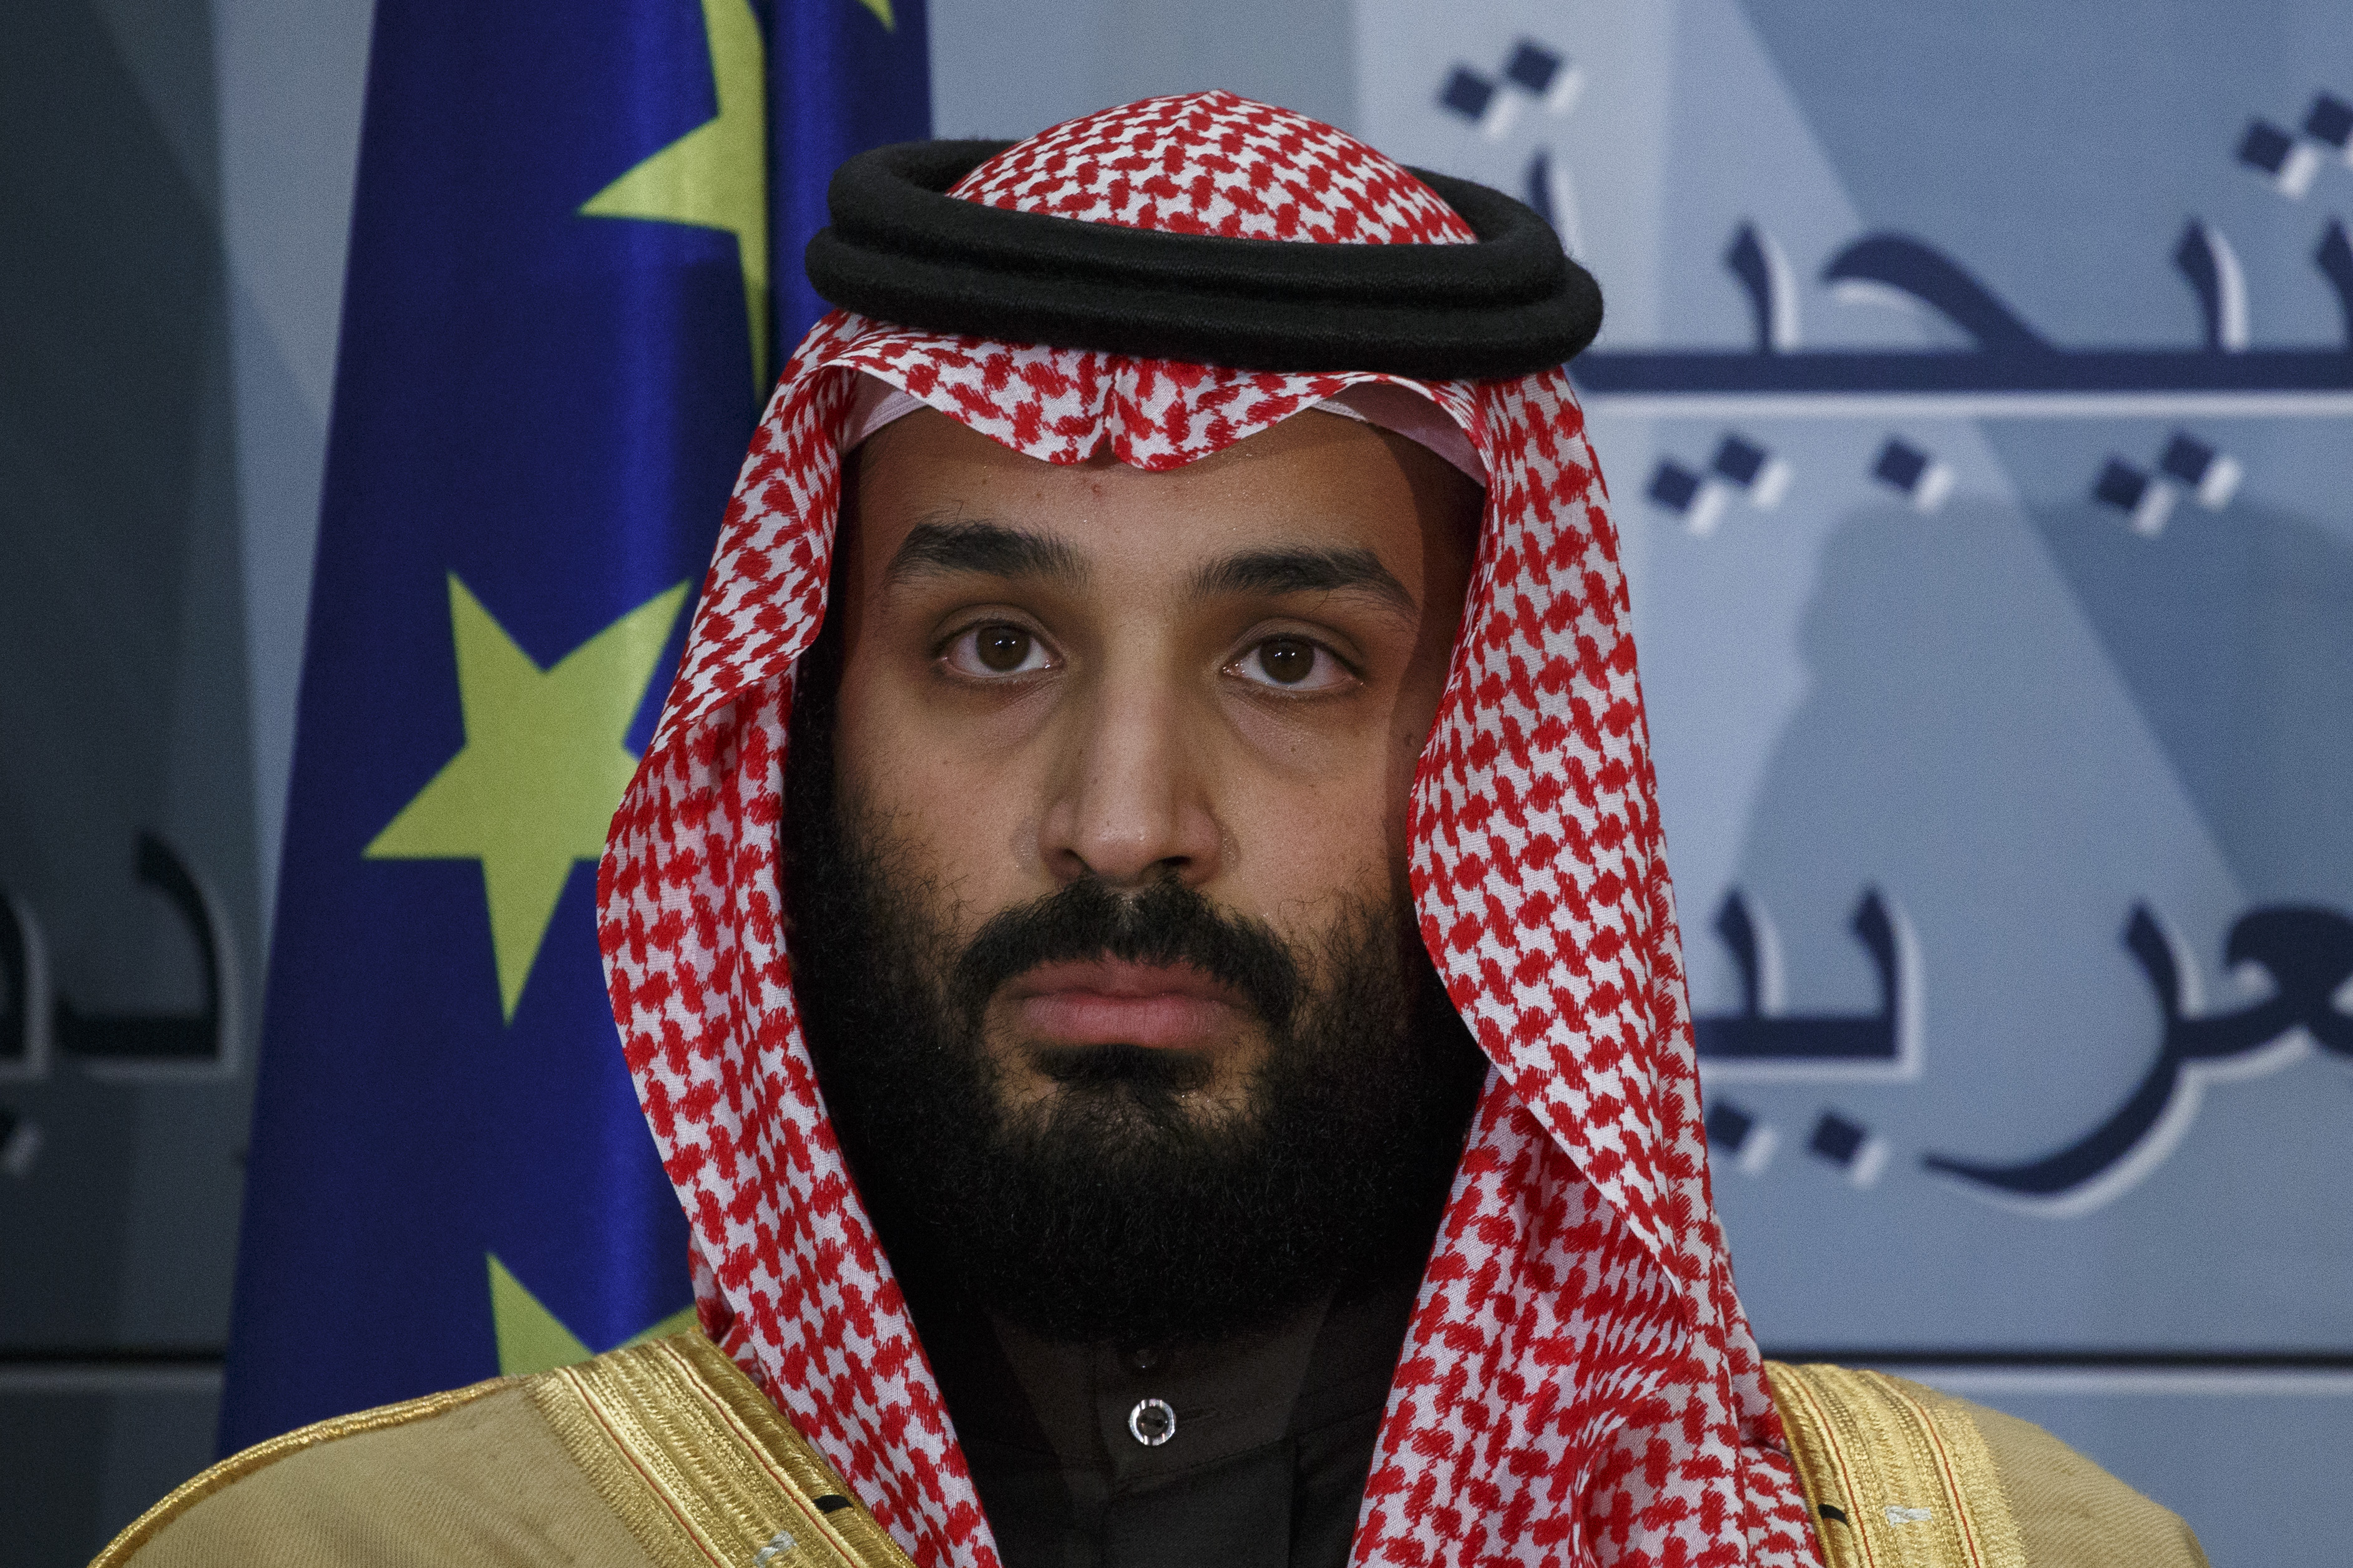 Saudi Arabia Crown Prince Mohammed bin Salman looks on during a ceremony at Moncloa Palace on Apr. 12, 2018 in Madrid, Spain